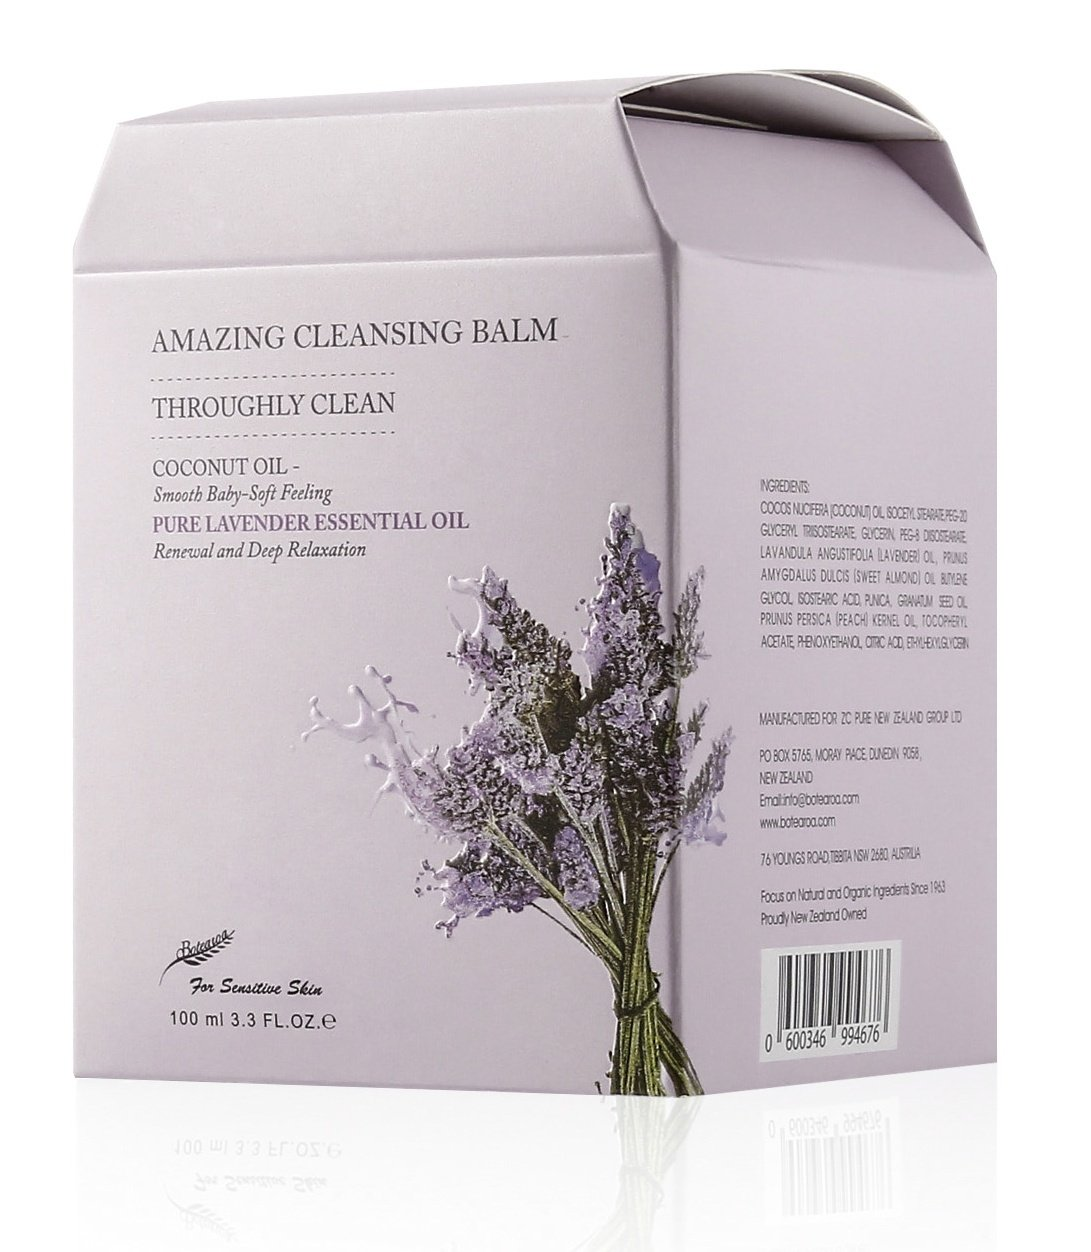 Makeup Remover Botearoa Amazing Cleansing Balm for Face&eyes (with Organic Lavender Essential Oil and Coconut Oil,for Sensitive SkinType,for Waterproof Mascara&eyeliner) 100ml